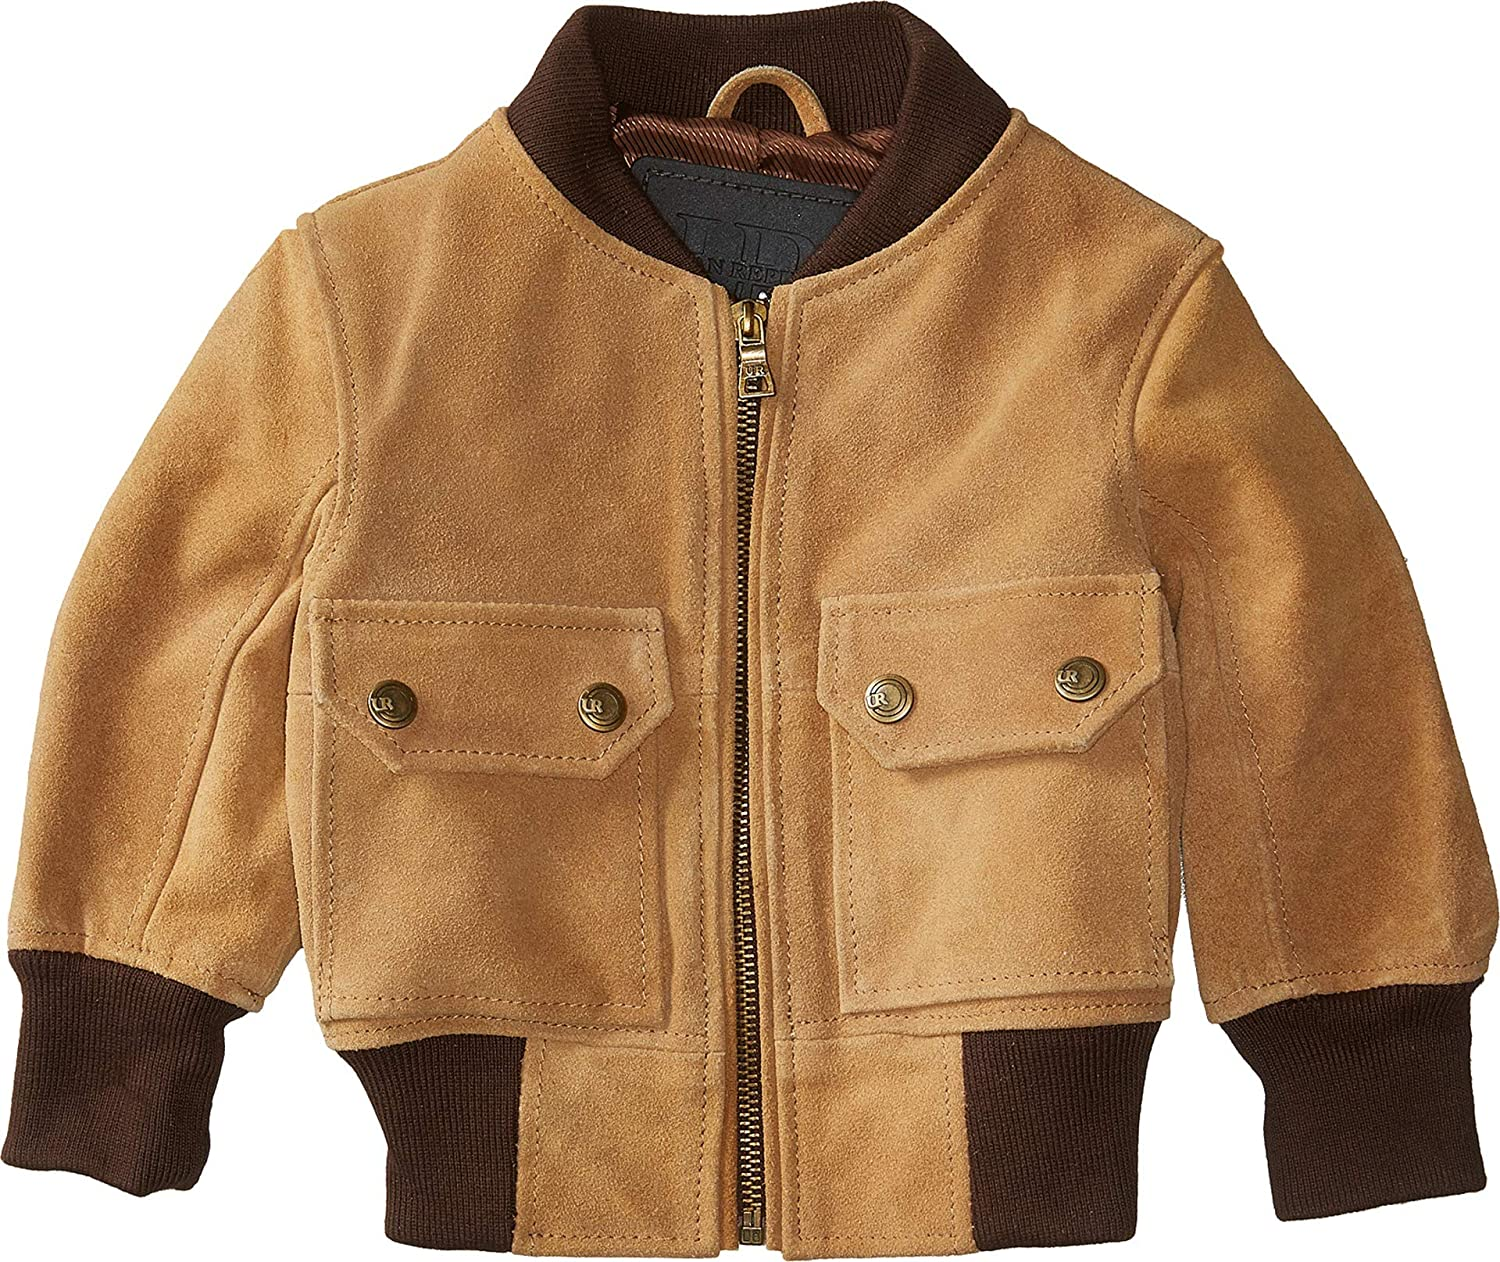 Infant//Toddler Urban Republic Kids Baby Boys Cow Suede Leather Jacket